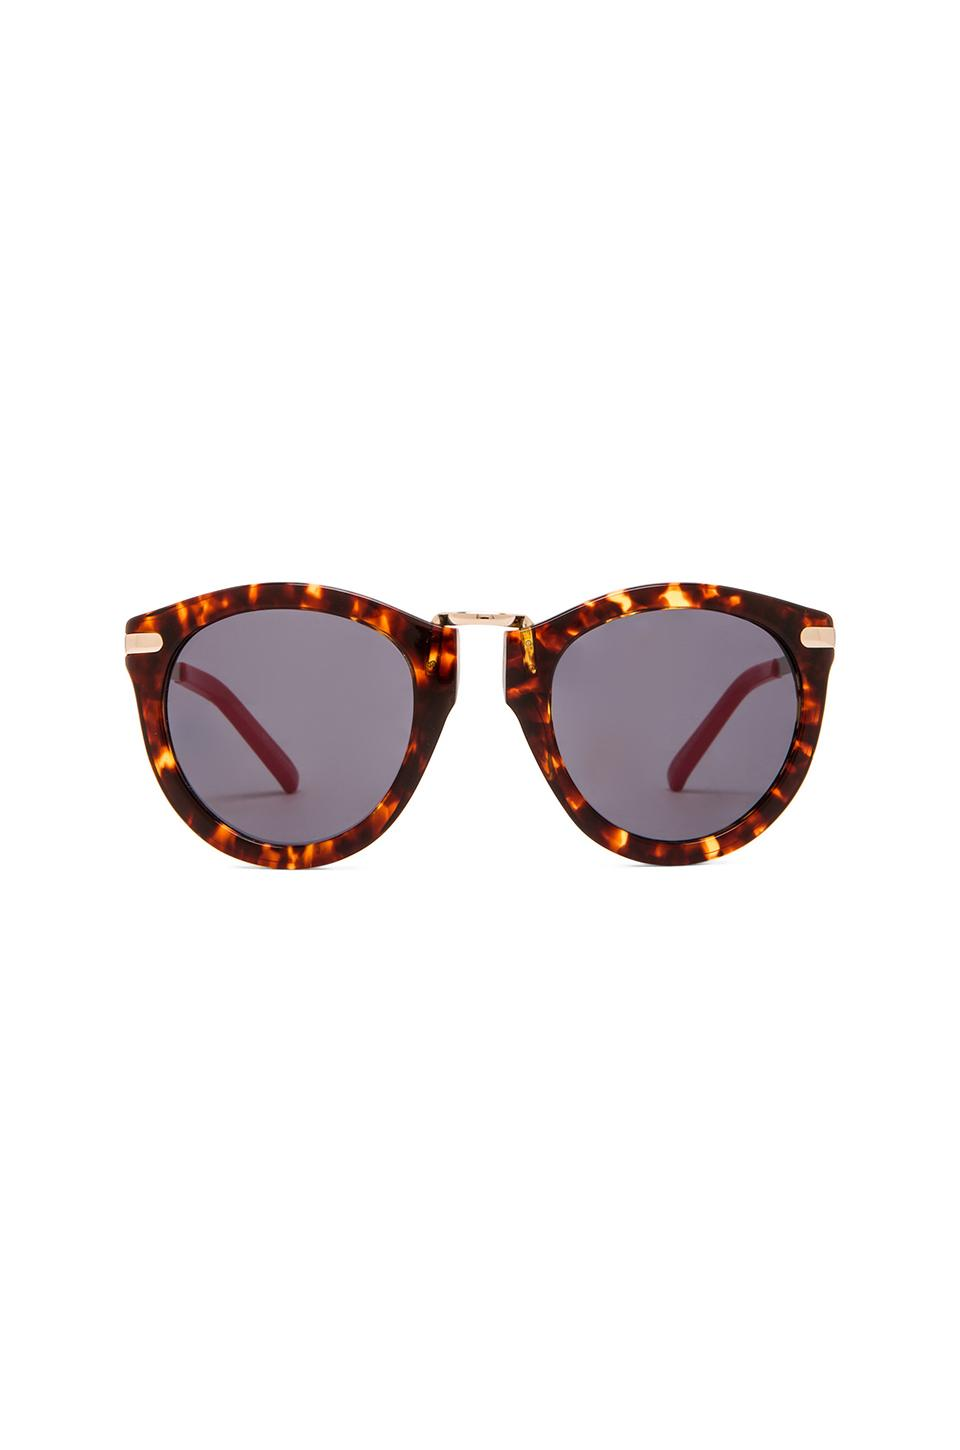 BEACH RIOT The Superior in Tortoise